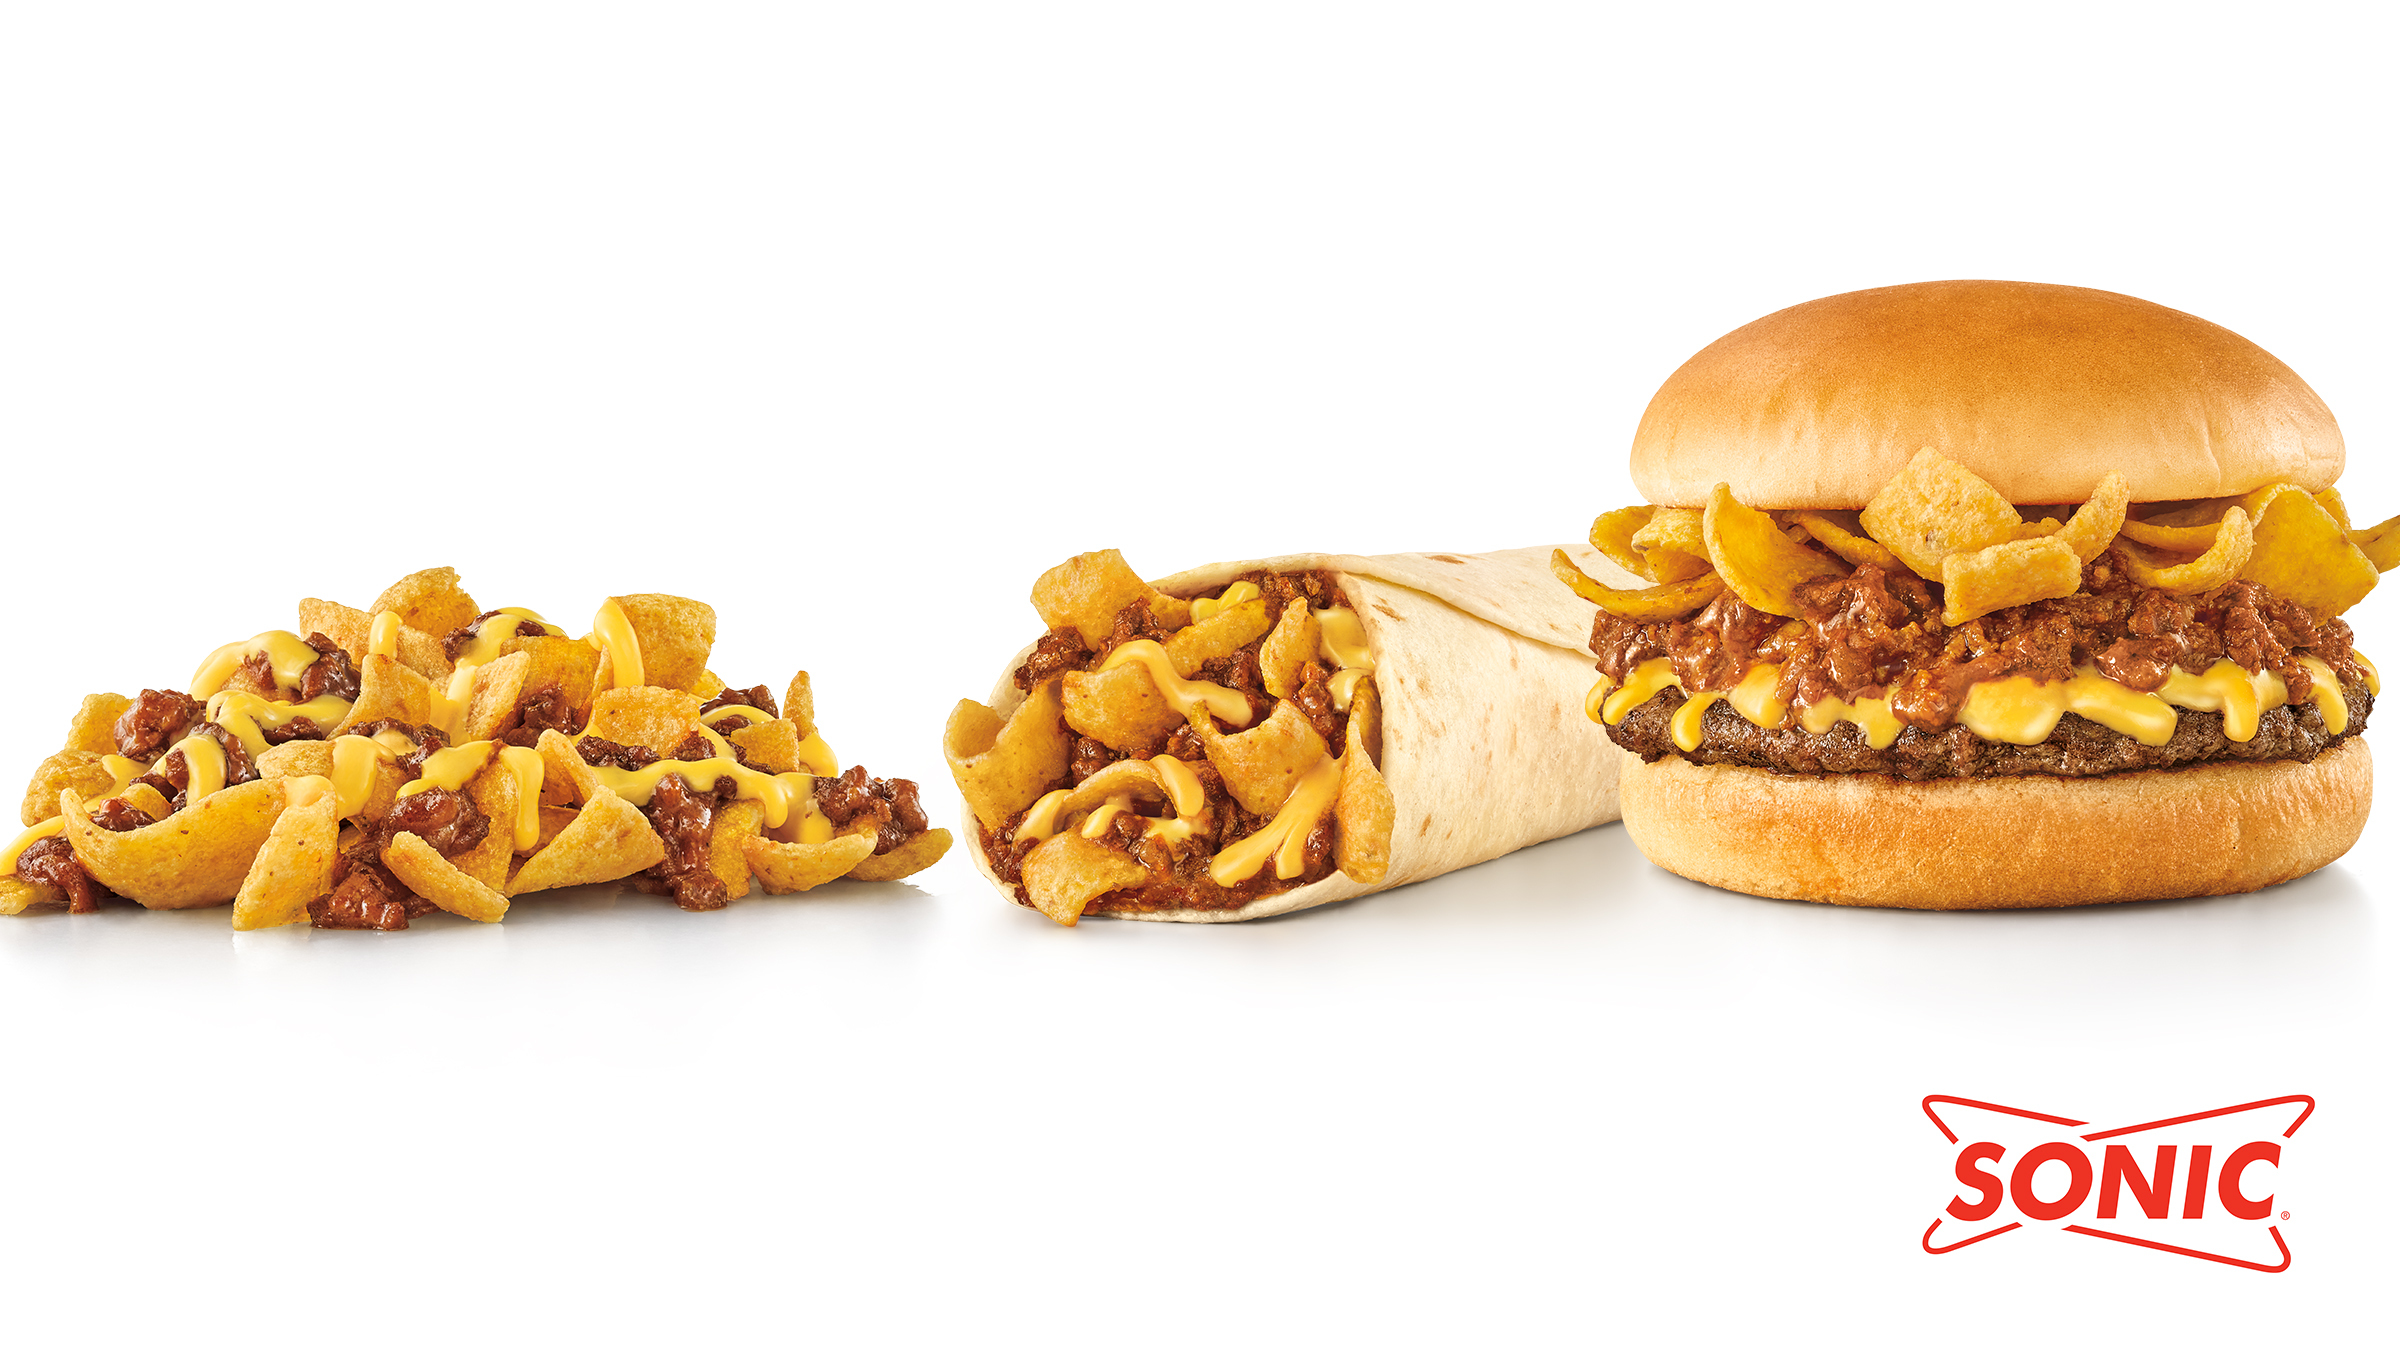 sonic brings extra crunch and flavor to drive ins with new fritos